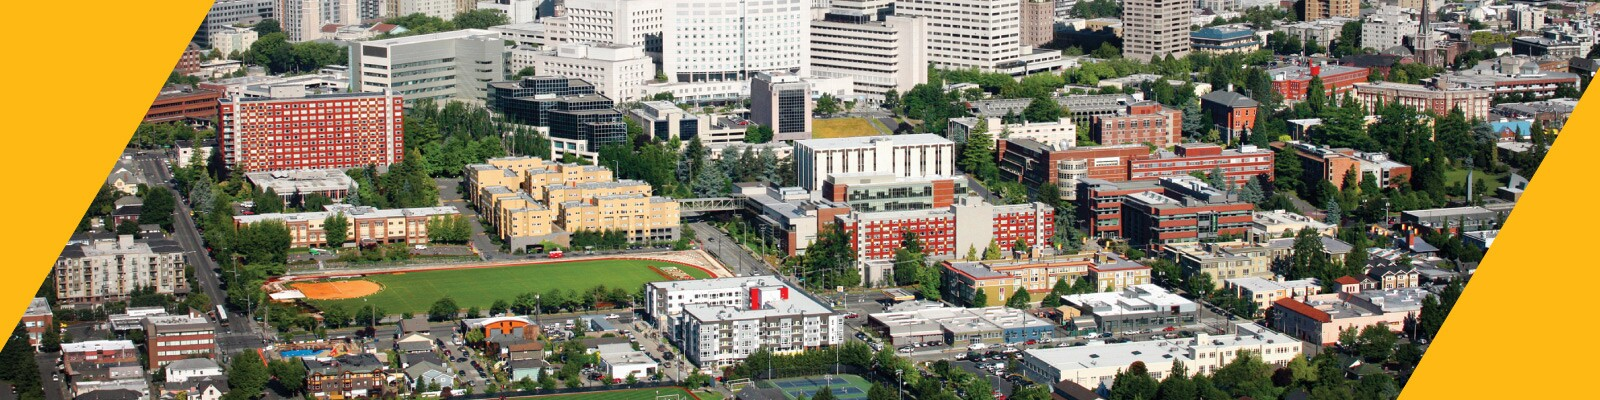 Aerial view of Seattle University campus